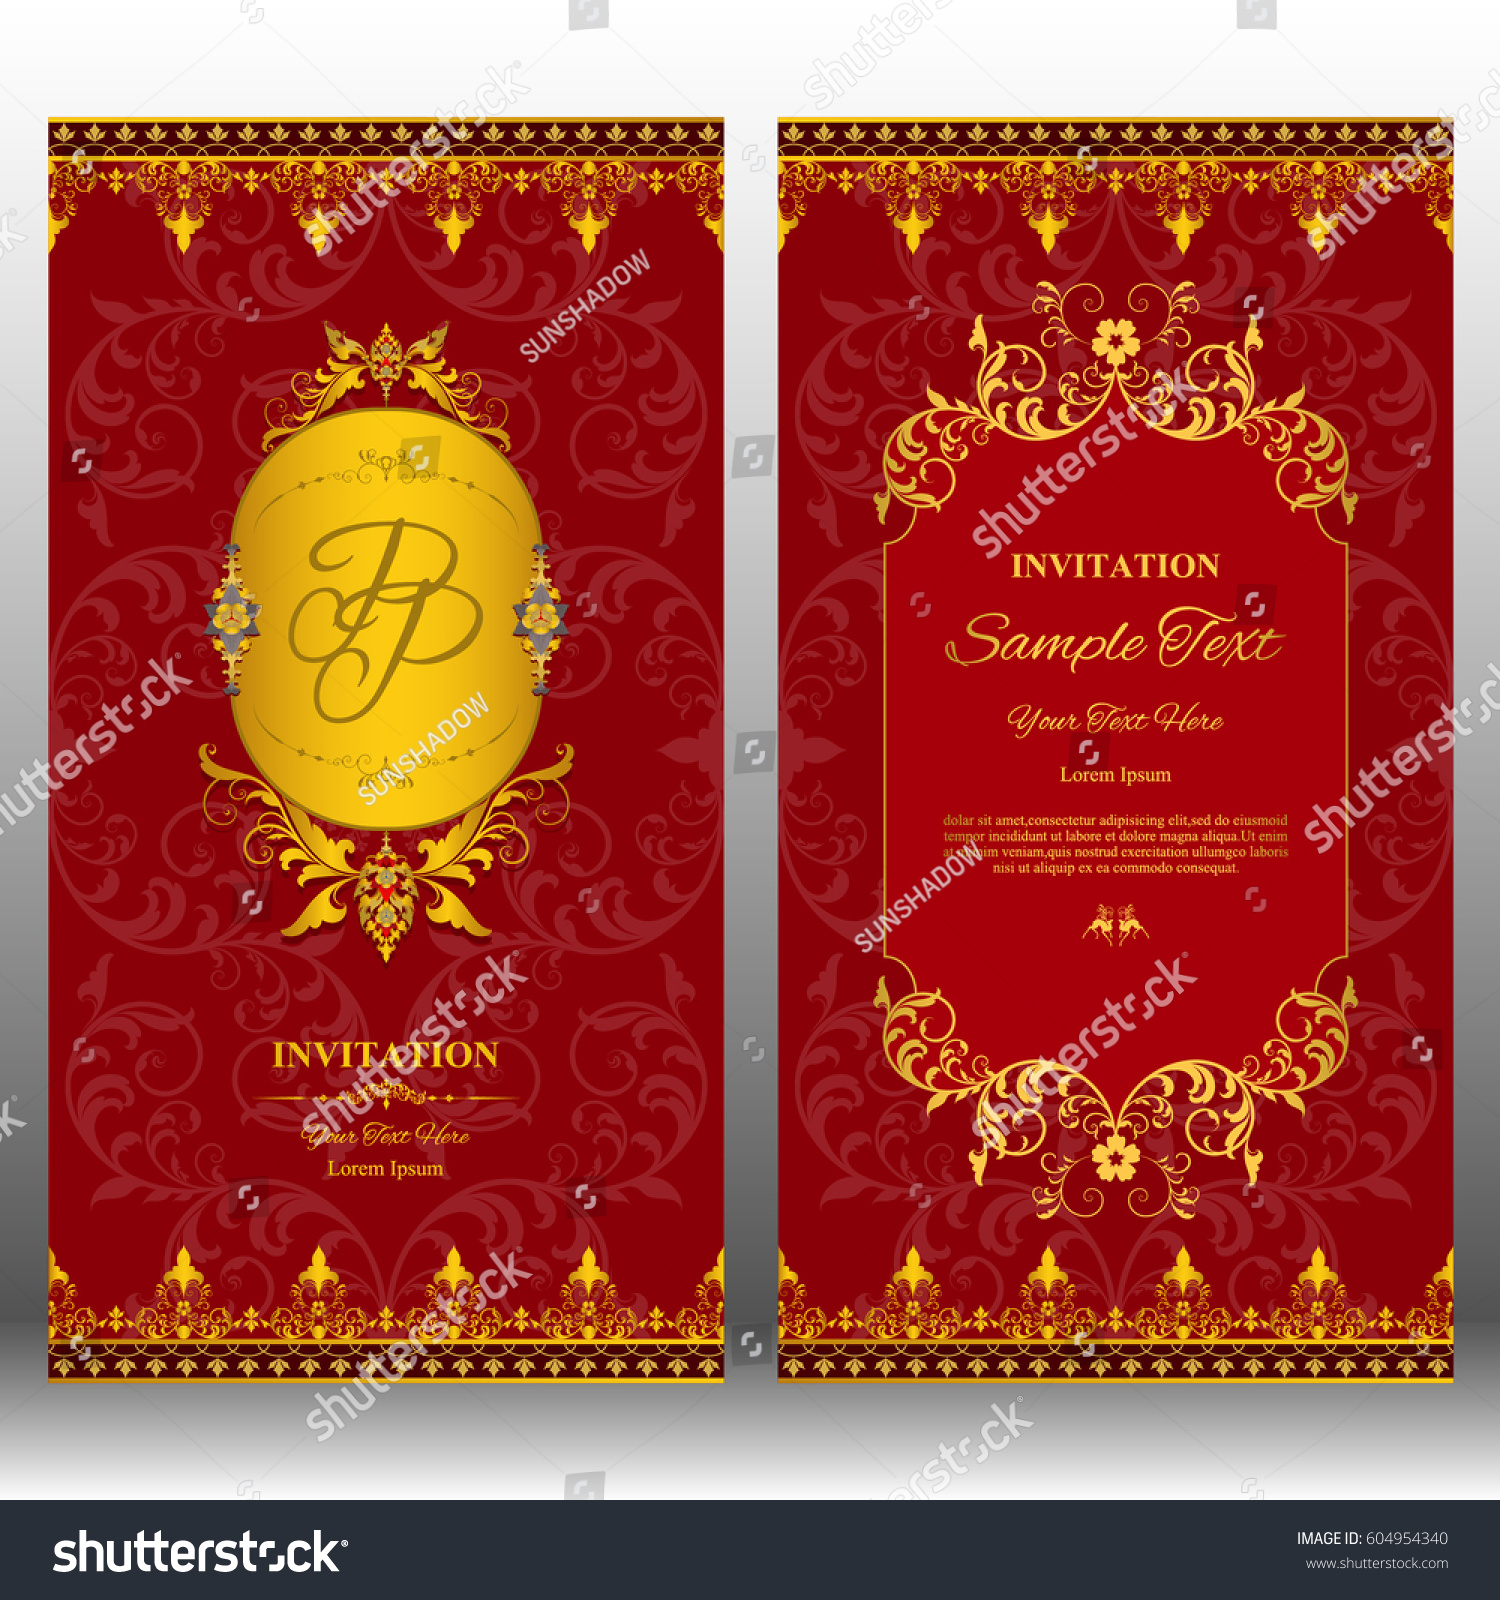 Wedding Invitation Card With Contemporary Thai Design With Stock ...